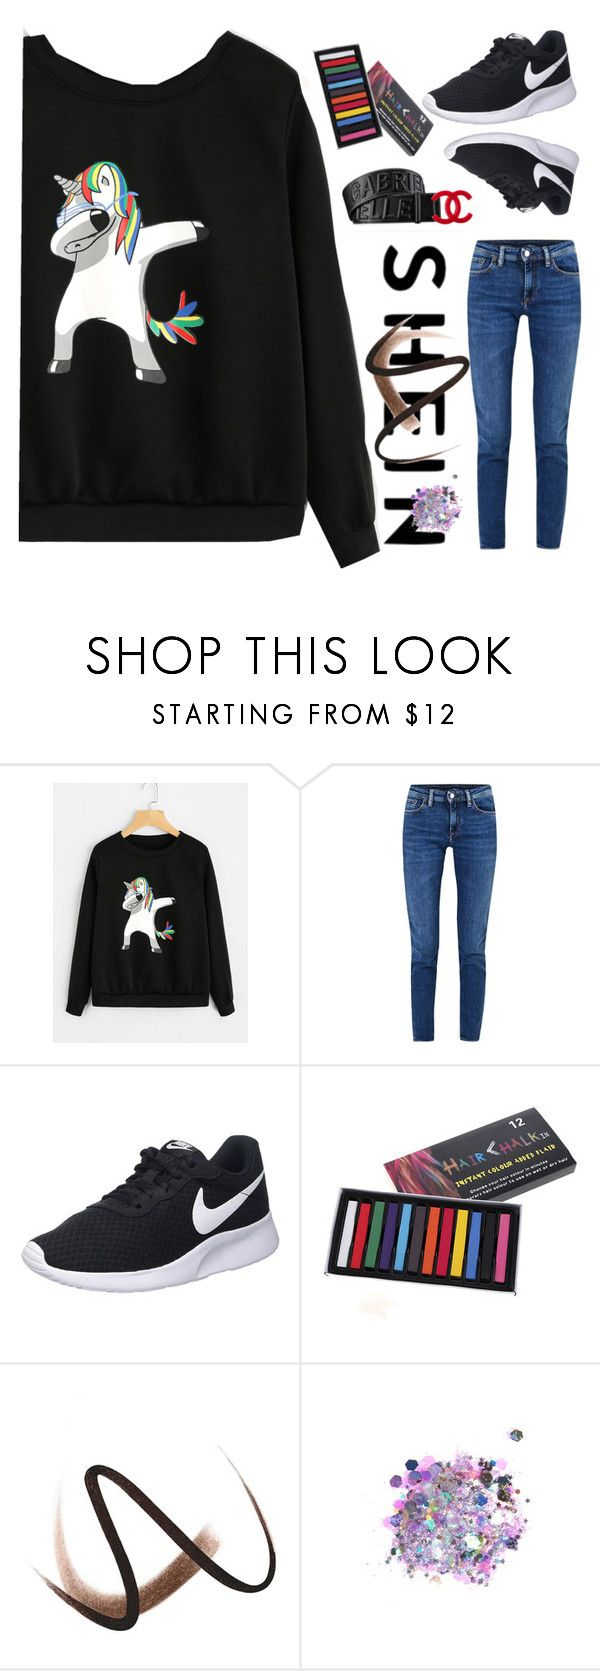 """unicorn"" by young-and-freeeee on Polyvore featuring Acne Studios, NIKE, Gucci, My Makeup Brush Set, Burberry and The Gypsy Shrine"